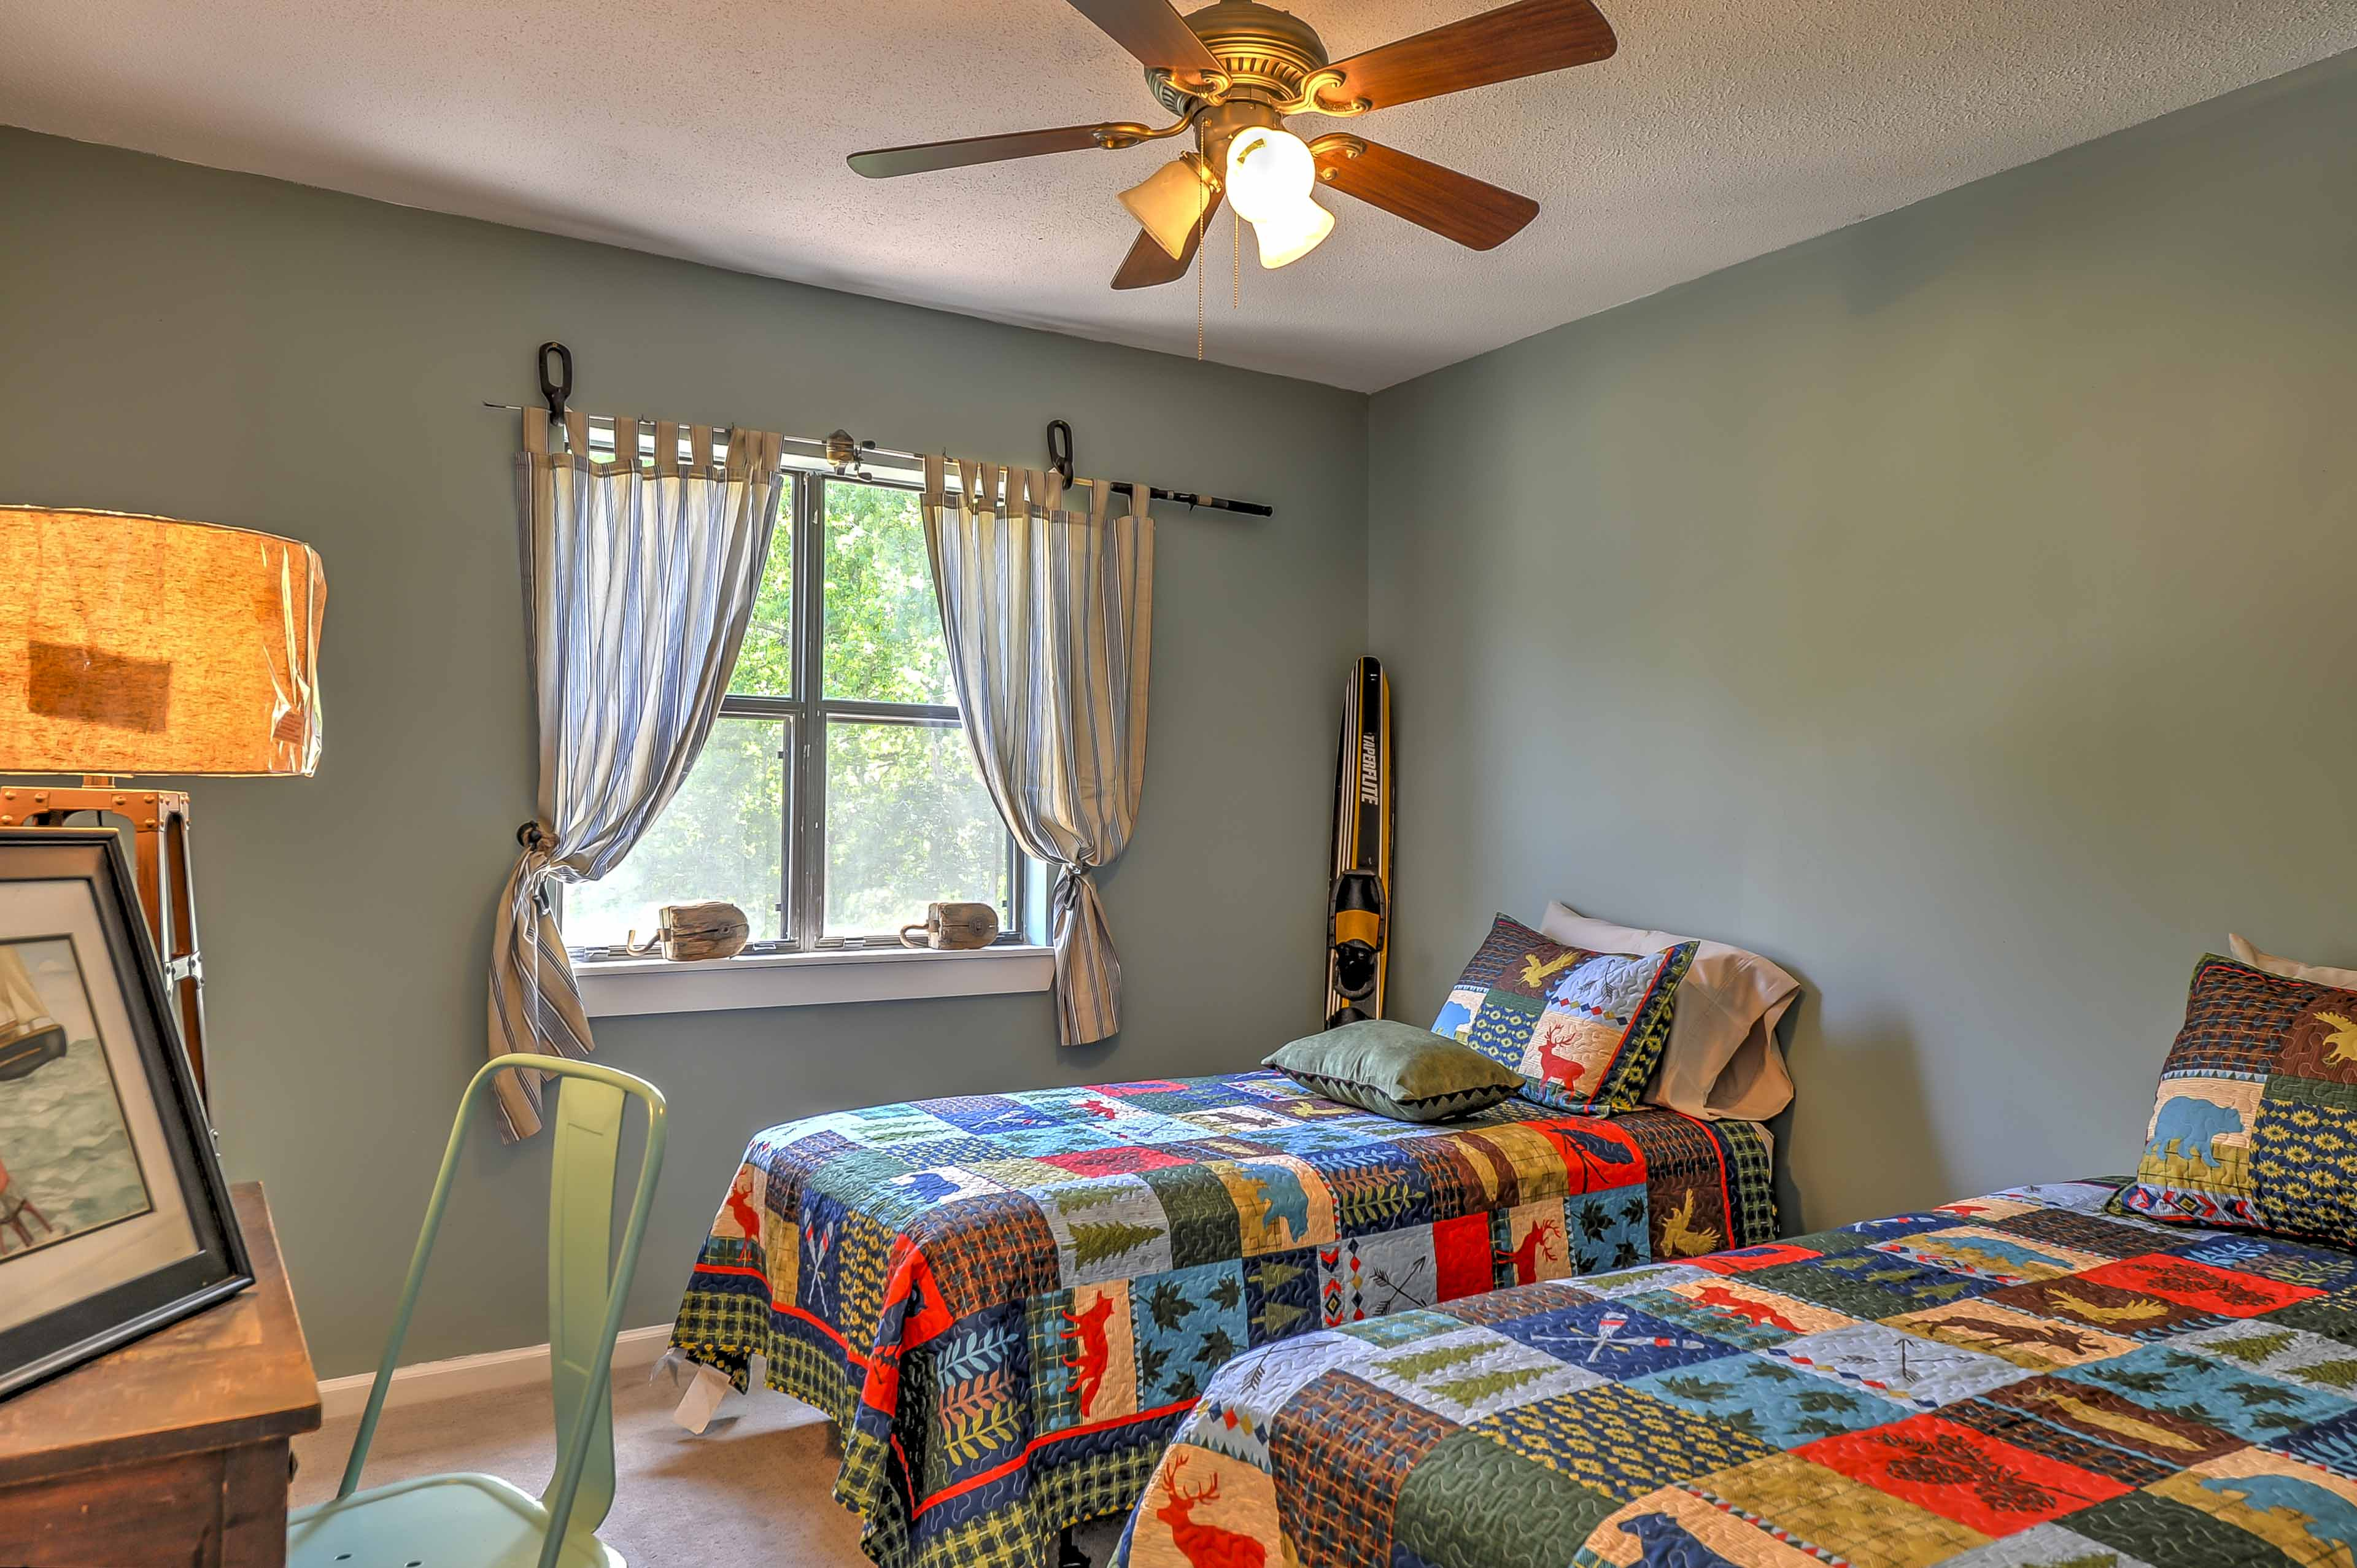 This vibrant bedroom is ideal for the kids!